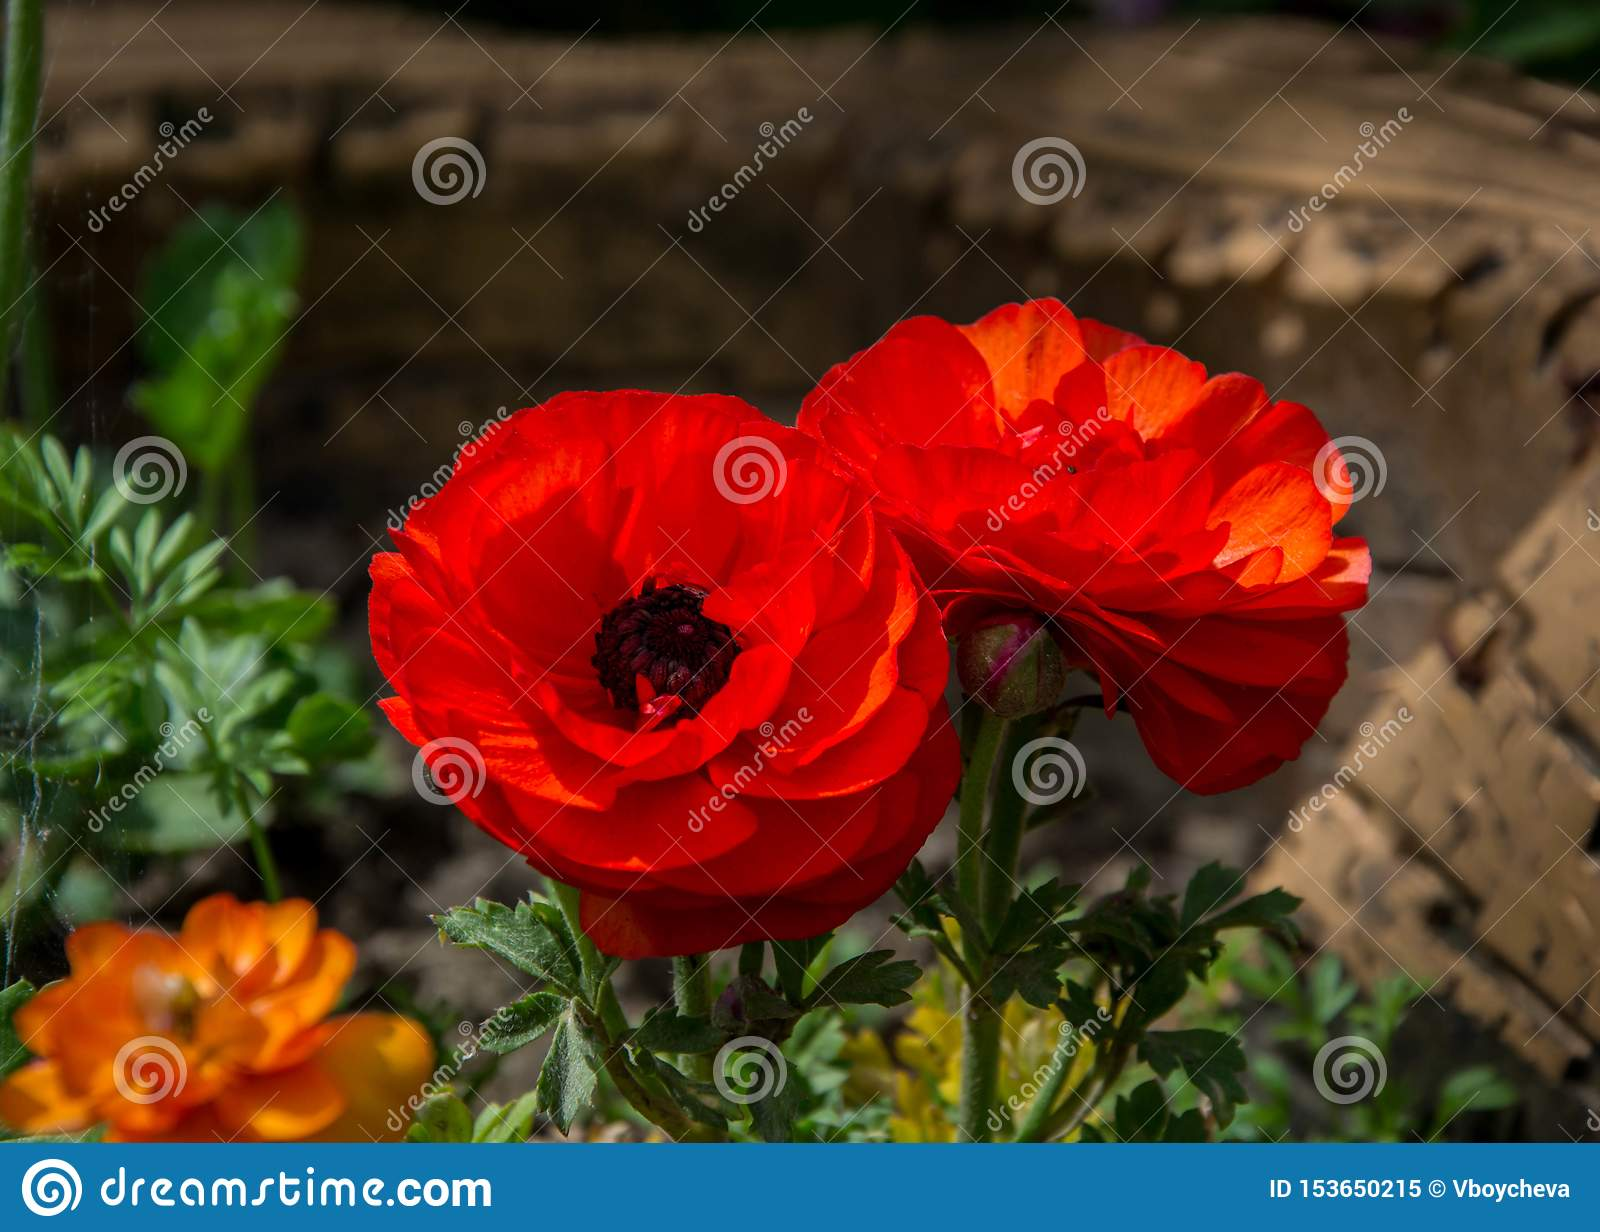 Tiny Red Flower With Black Center Looks Like Poppy Flower Springtime Blossom Spring Flowers Stock Image Image Of Blossoming Color 153650215